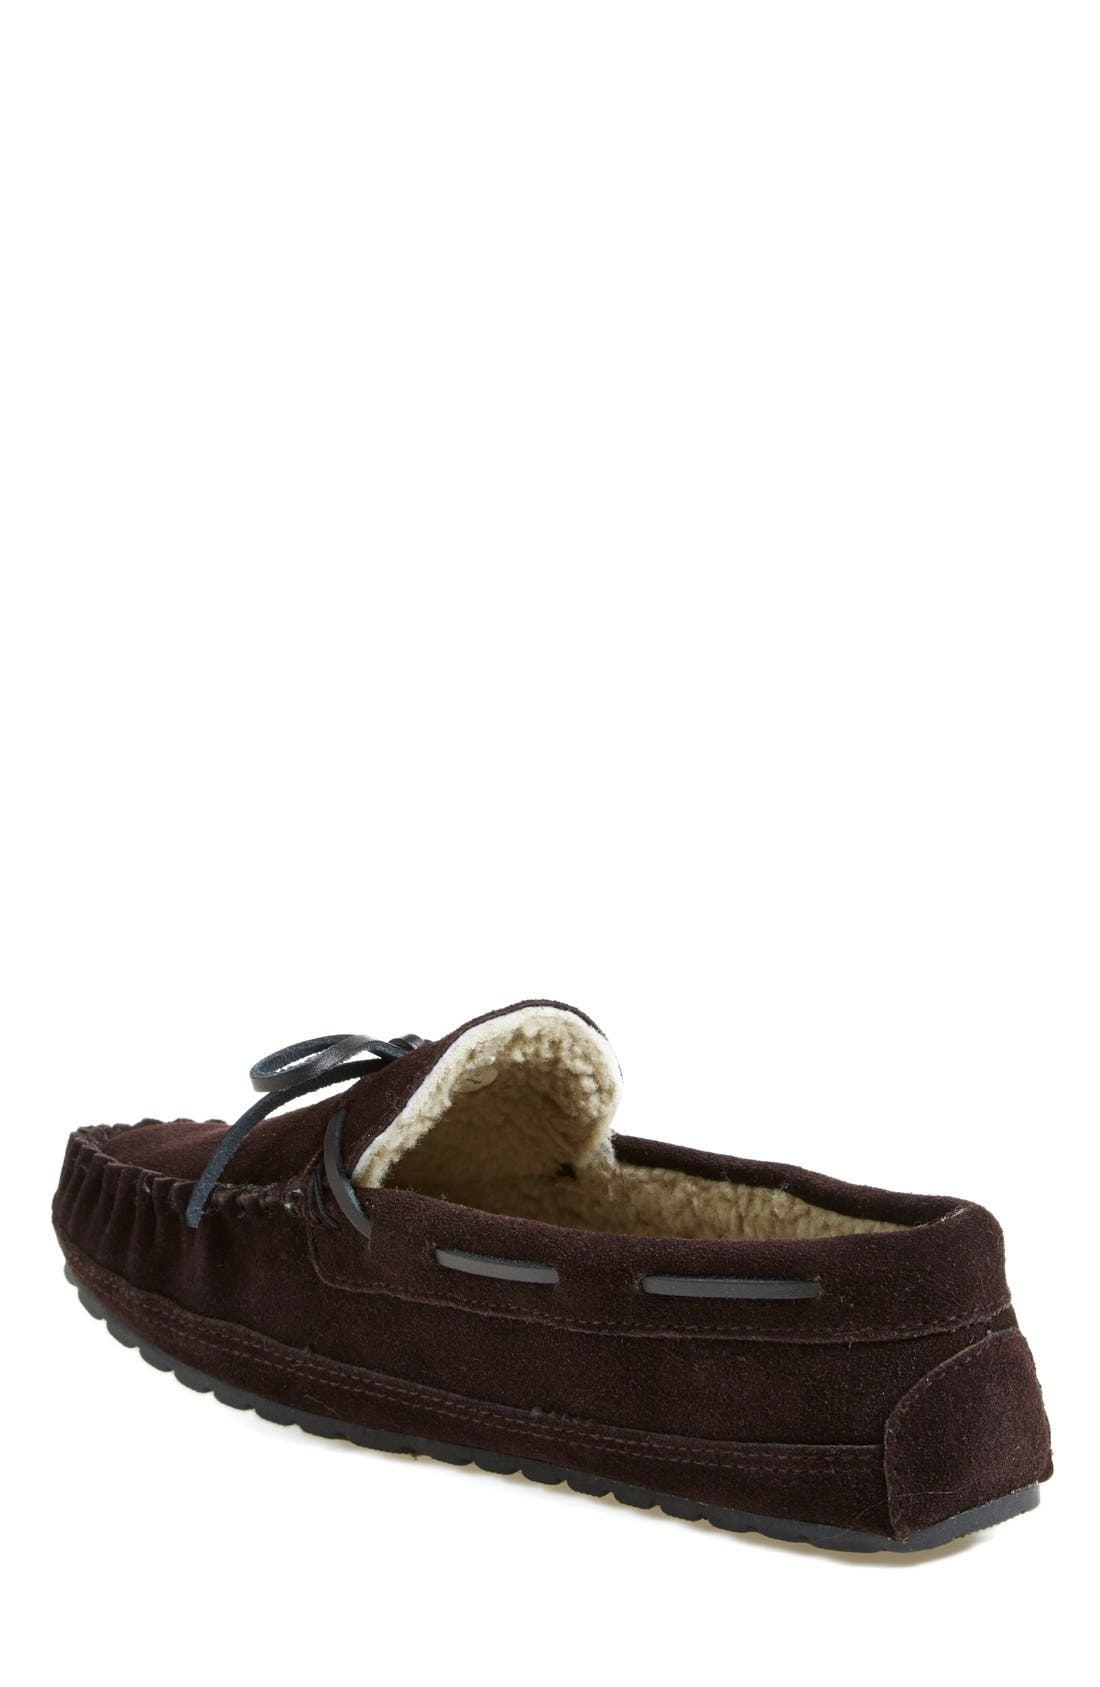 'Potomac' Moccasin Slipper,                             Alternate thumbnail 2, color,                             220